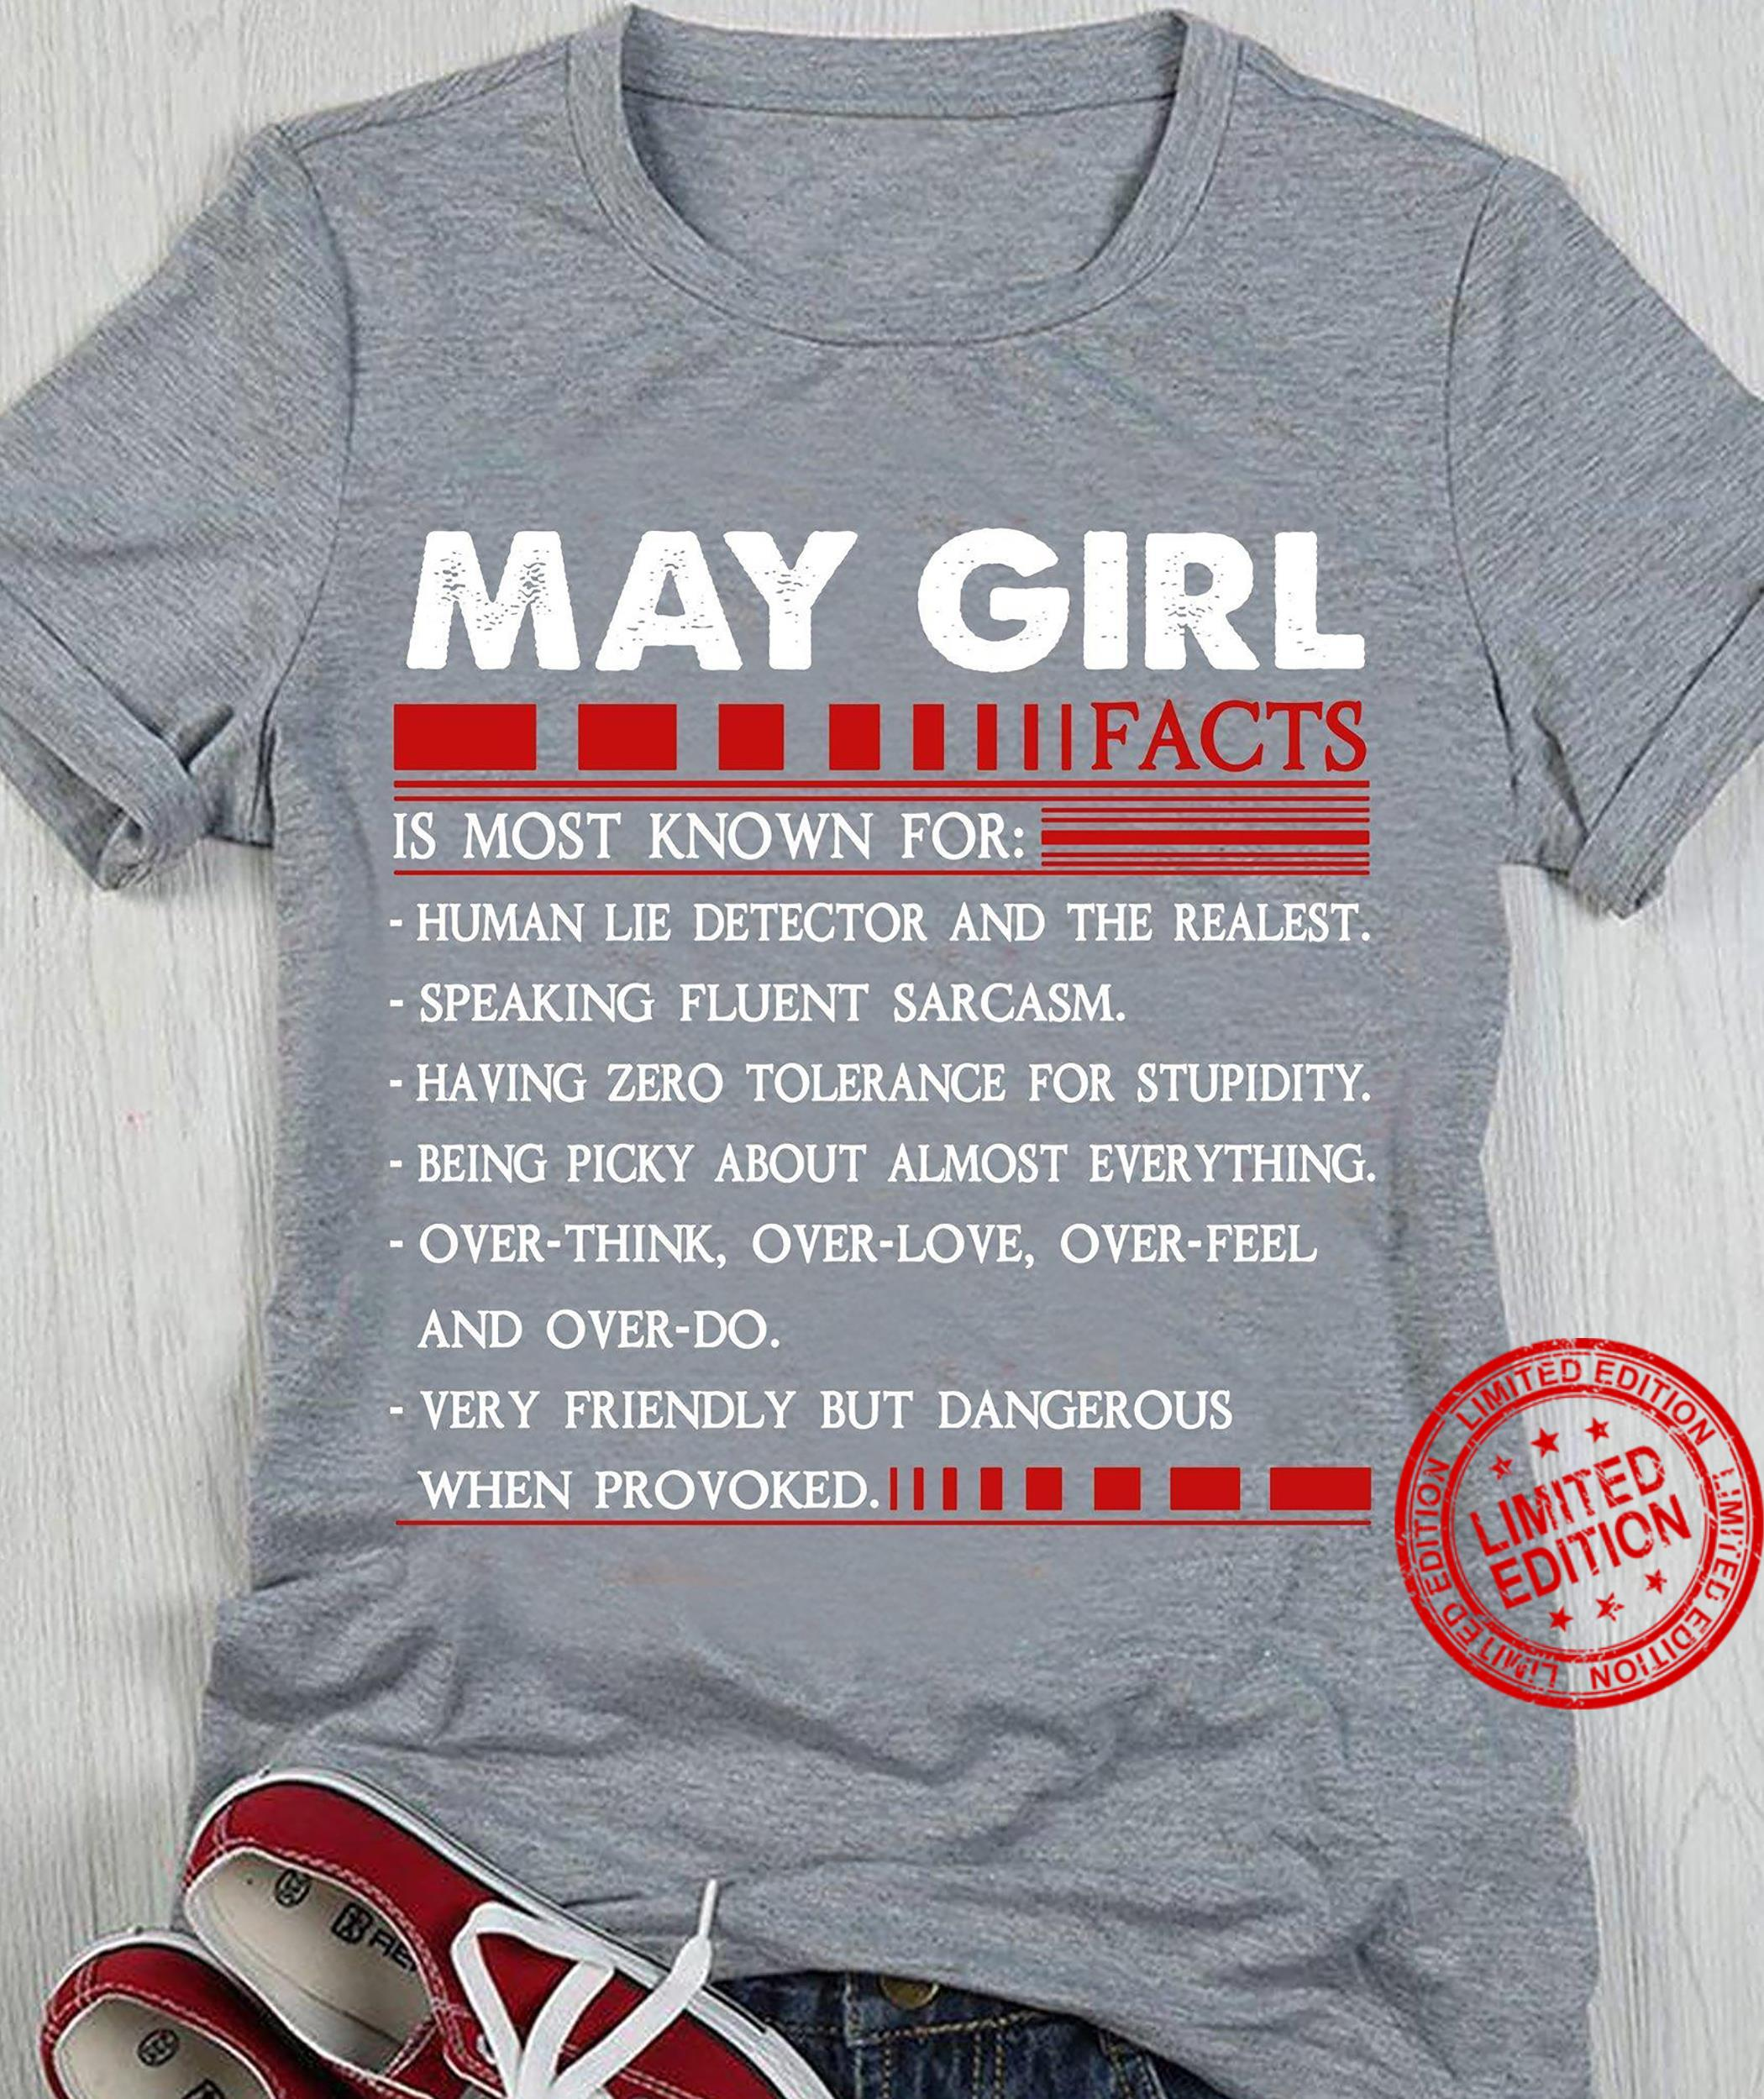 May Girl Facts Is Most Known For T-Shirt